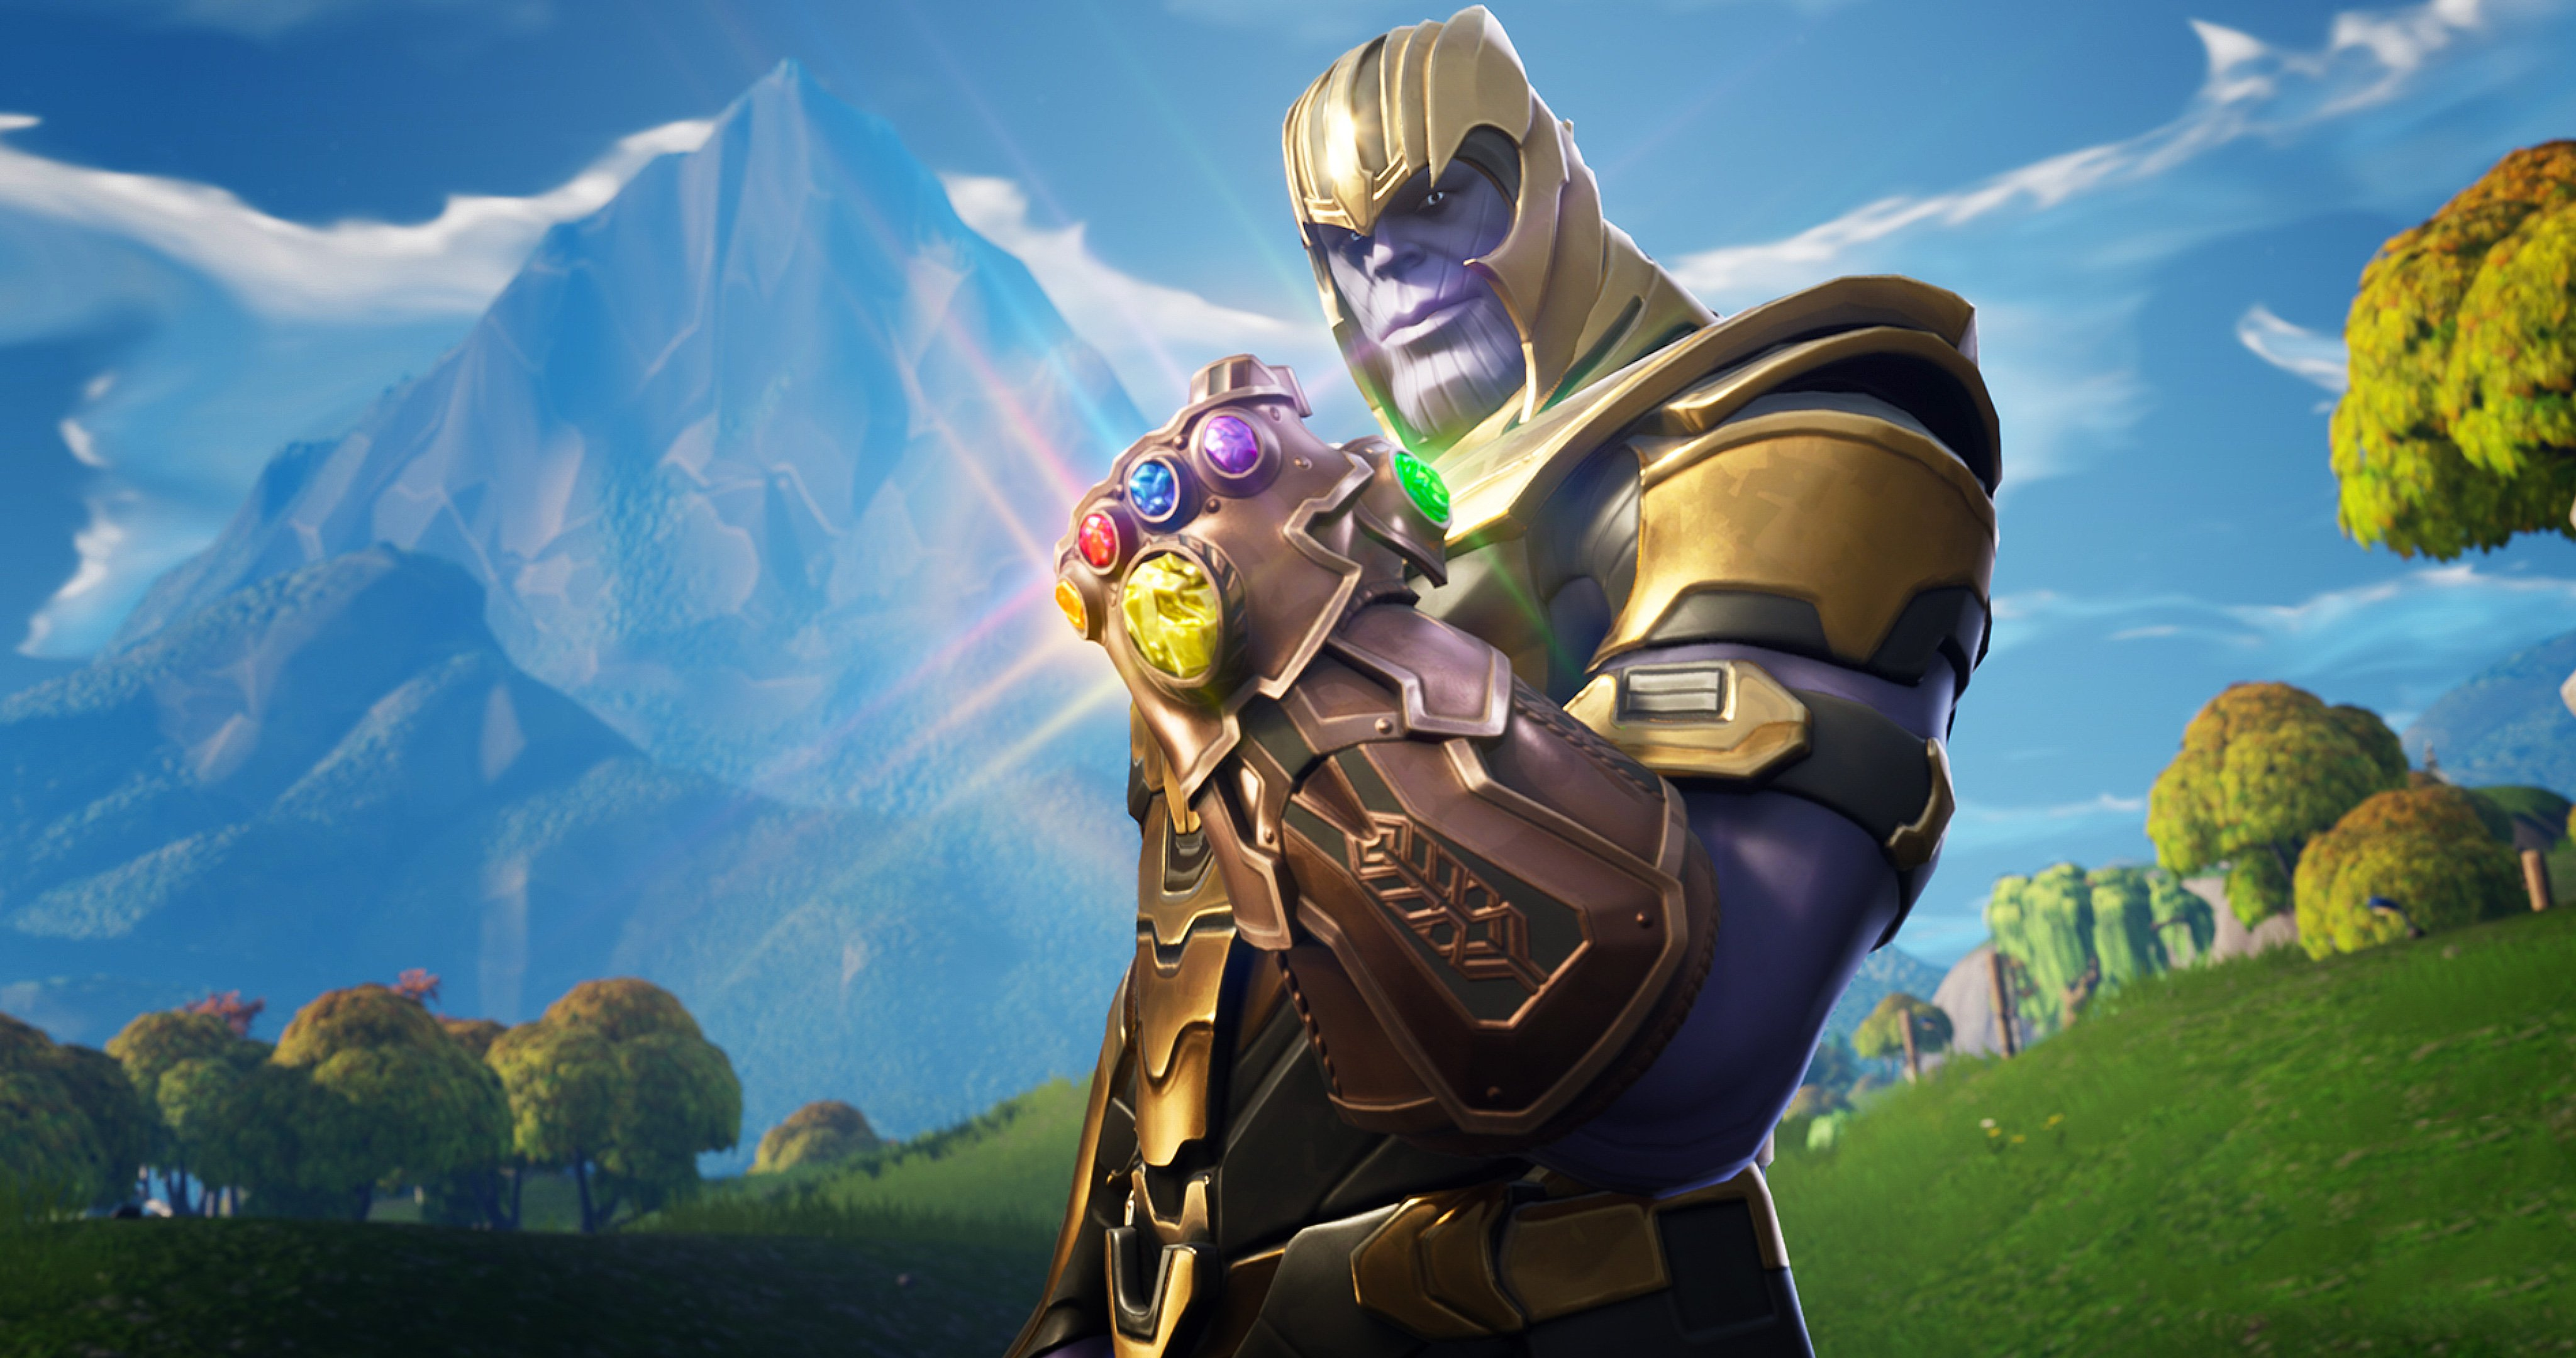 download Thanos In Fortnite Battle Royale HD Games 4k 4096x2160